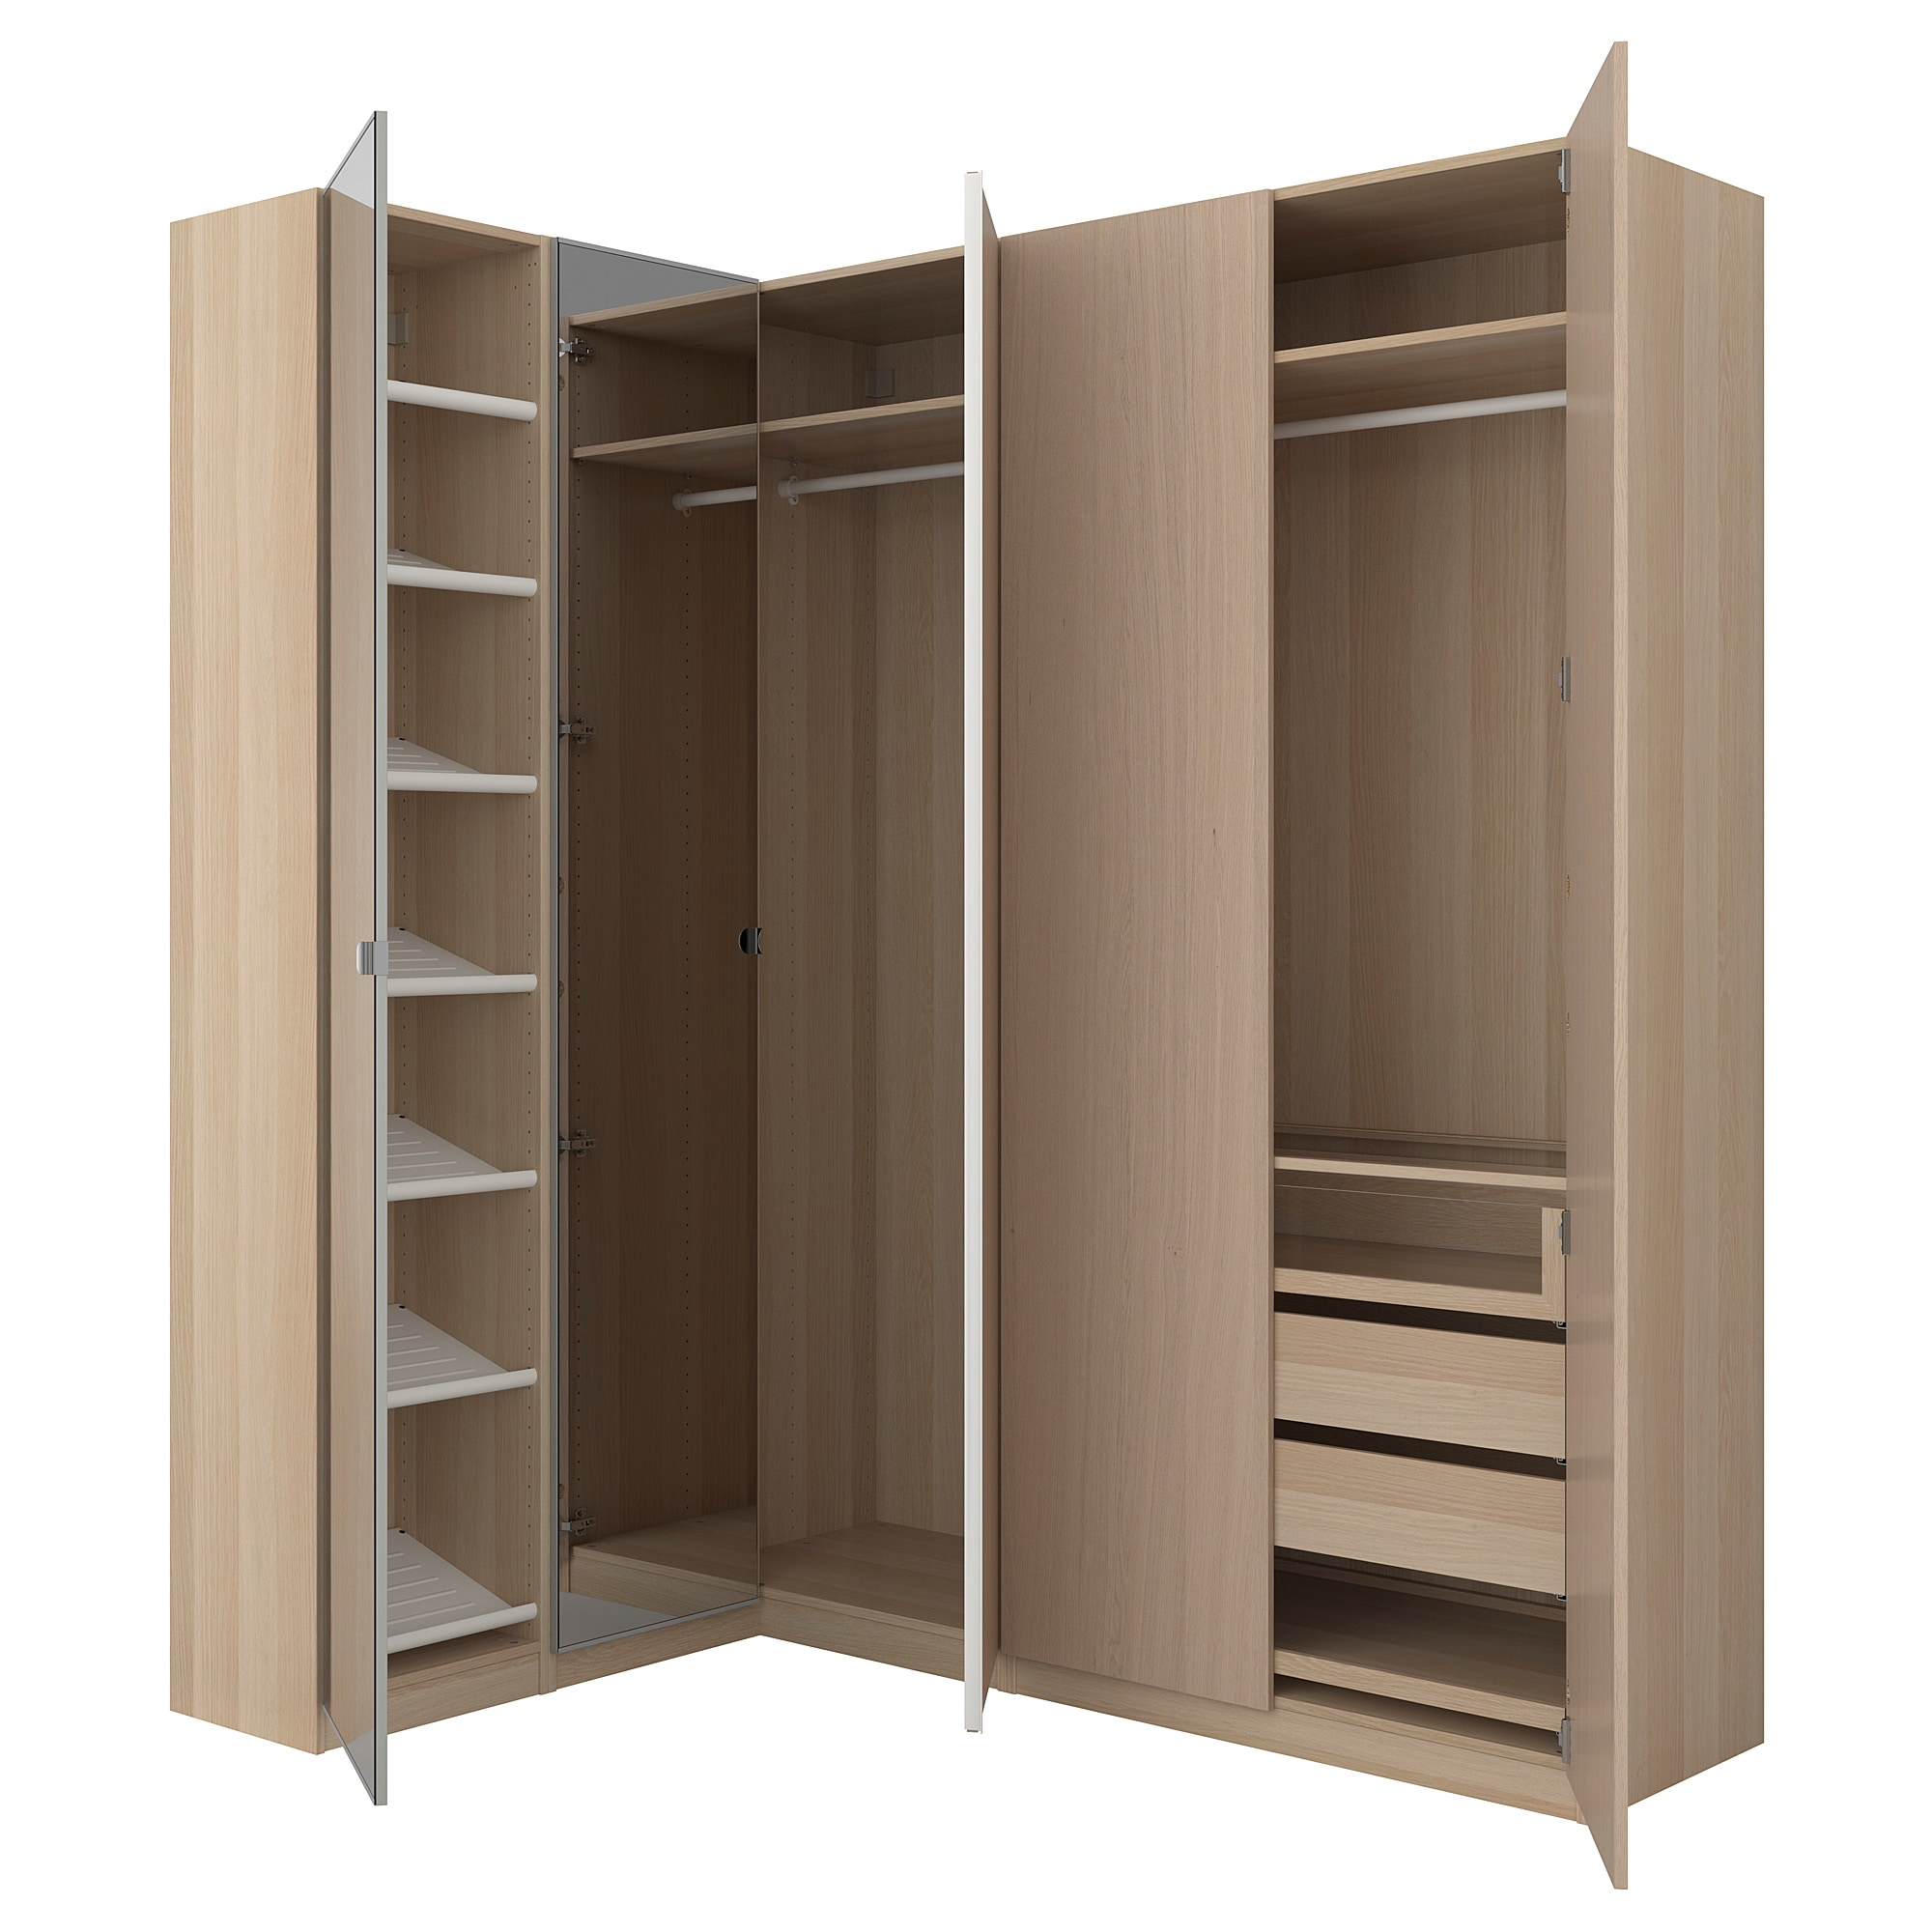 ikea pax corner wardrobe 10 year guarantee.  Read more about the conditions in REDNHFR